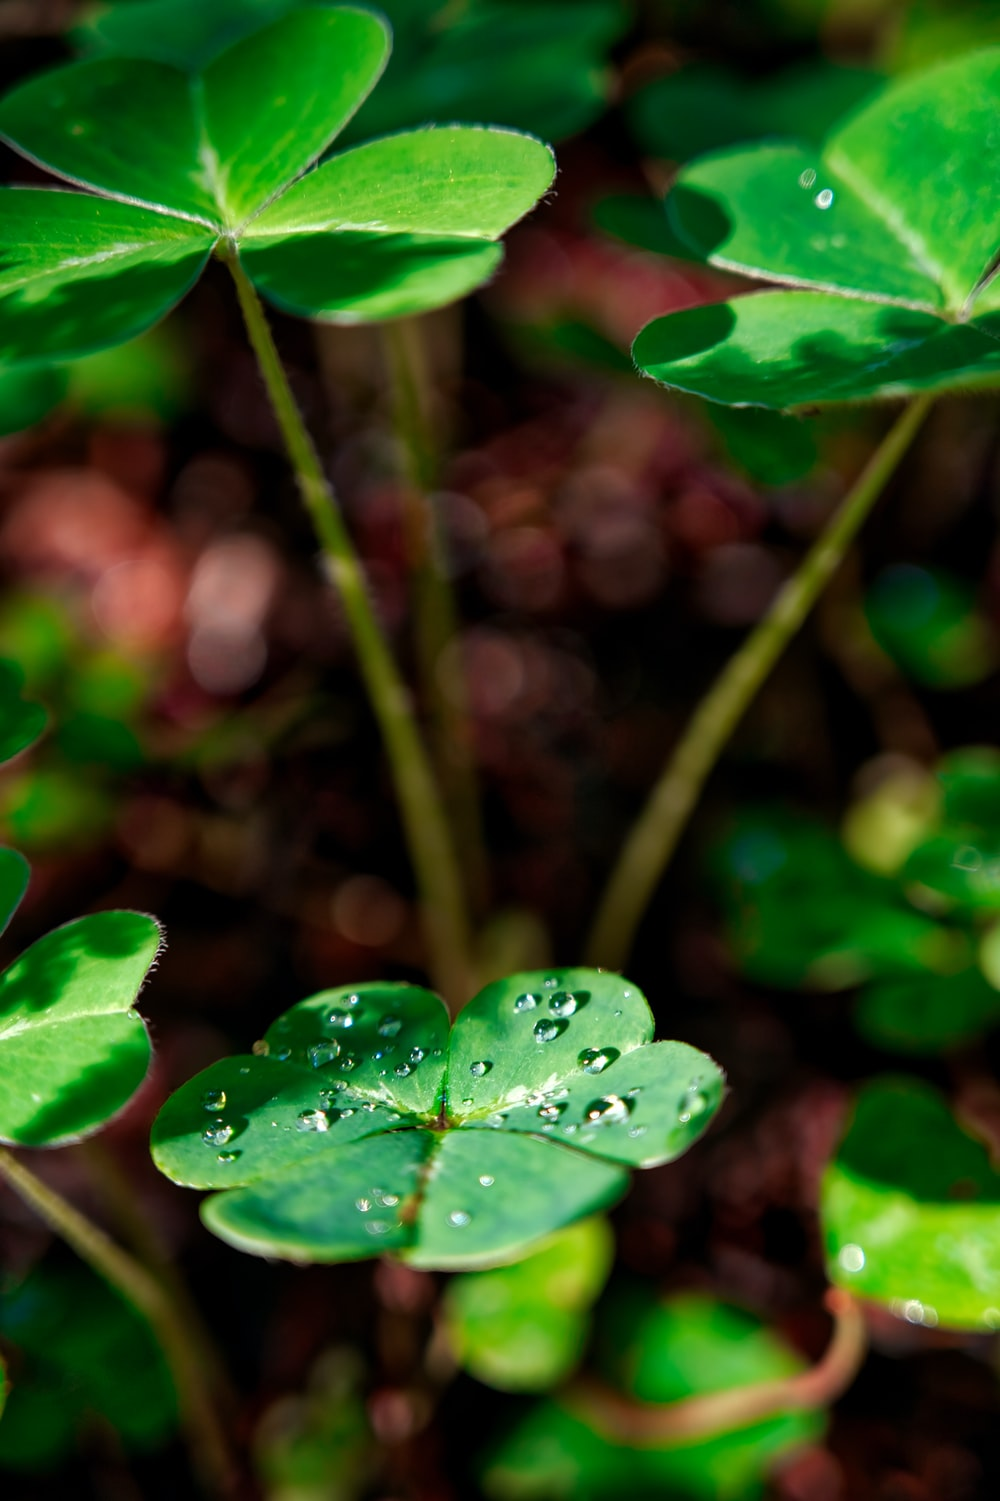 water droplets on green plant